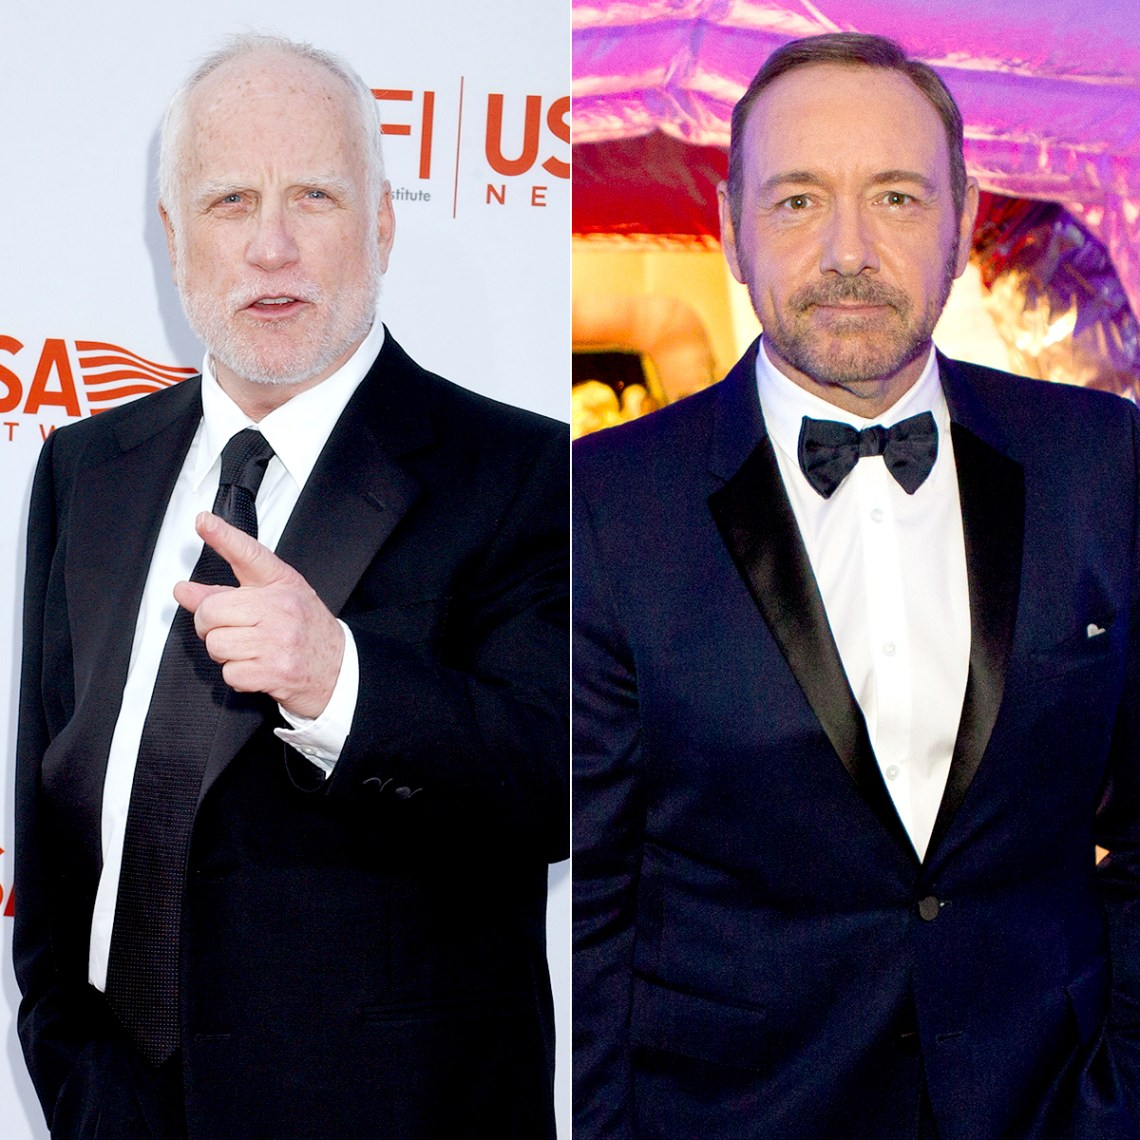 Richard-Dreyfuss-Praises-Son-Harry-for-Speaking-Out-About-Alleged-Kevin-Spacey-Harassment